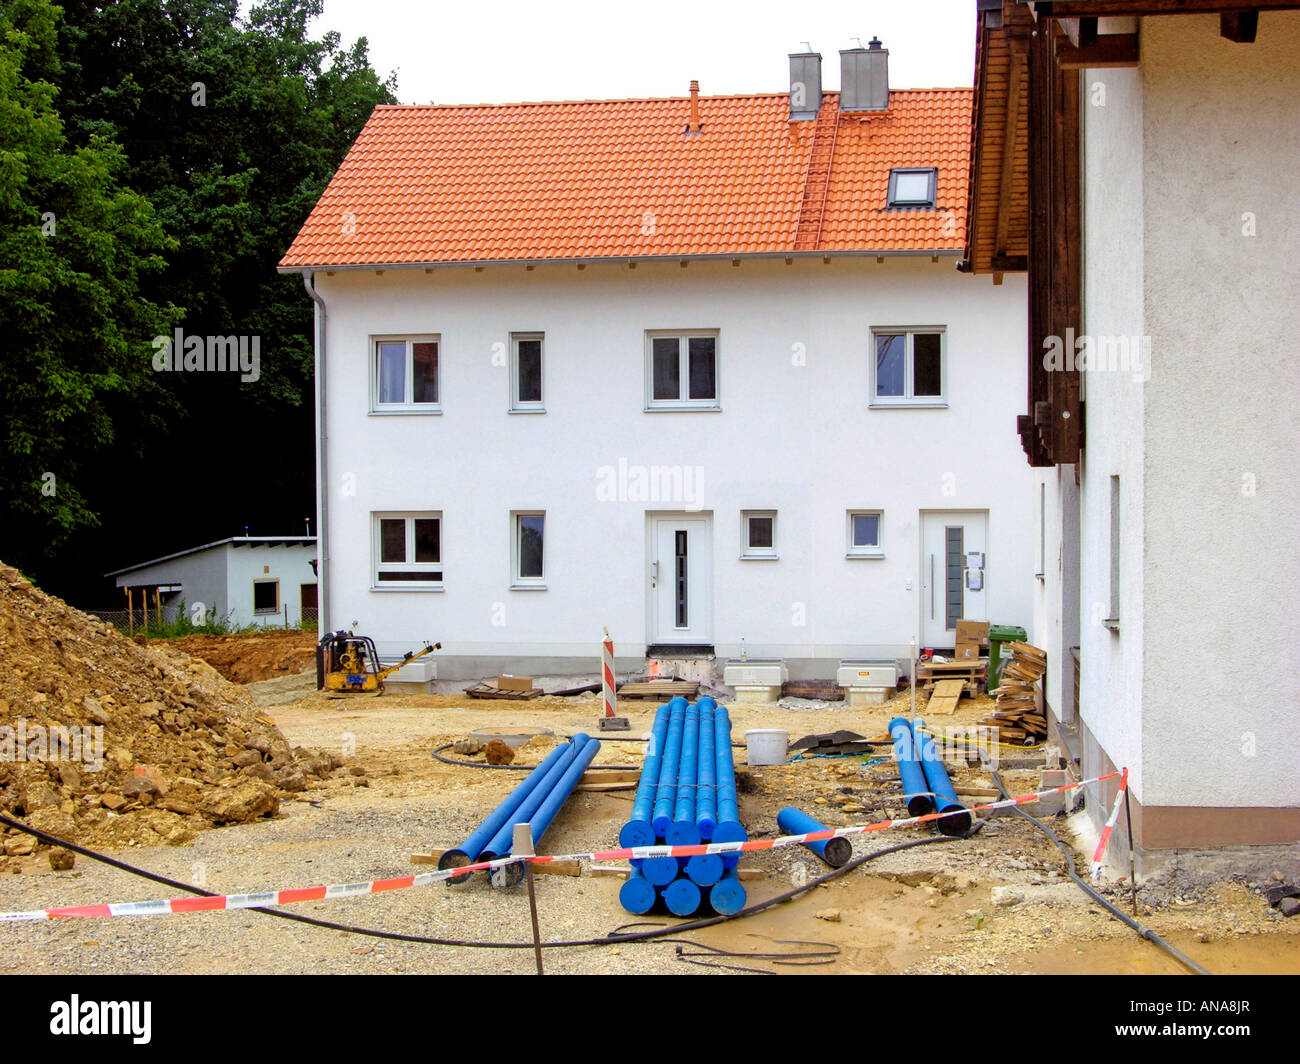 building site construction site site of works road works home family new modern terraced house town house row house - Stock Image